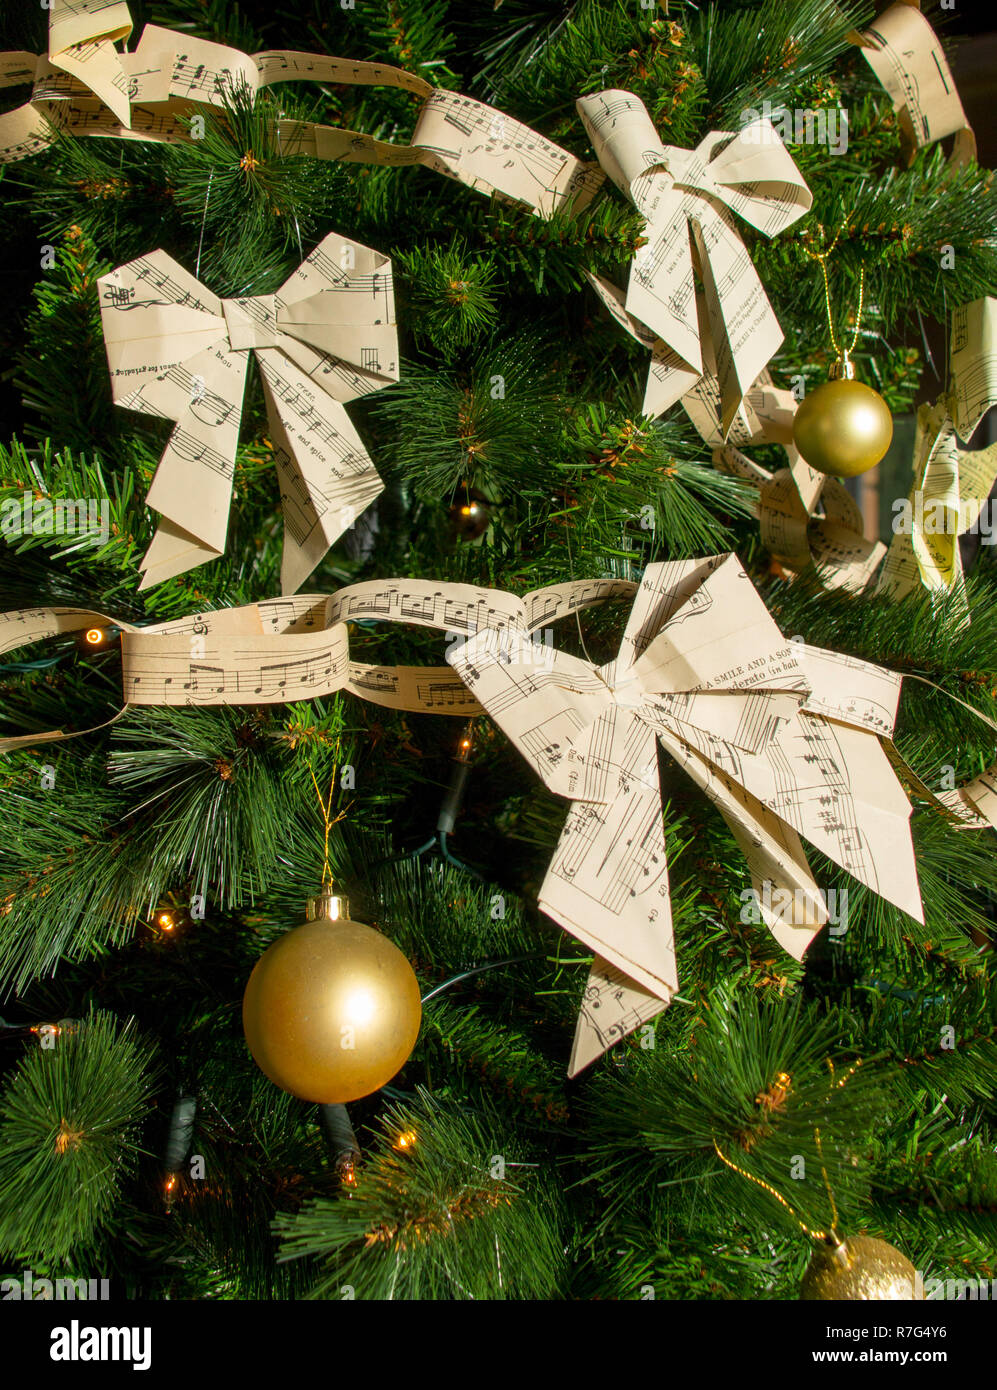 Christmas Paper Chains Uk.Christmas Bows And Paper Chains Made From Sheet Music